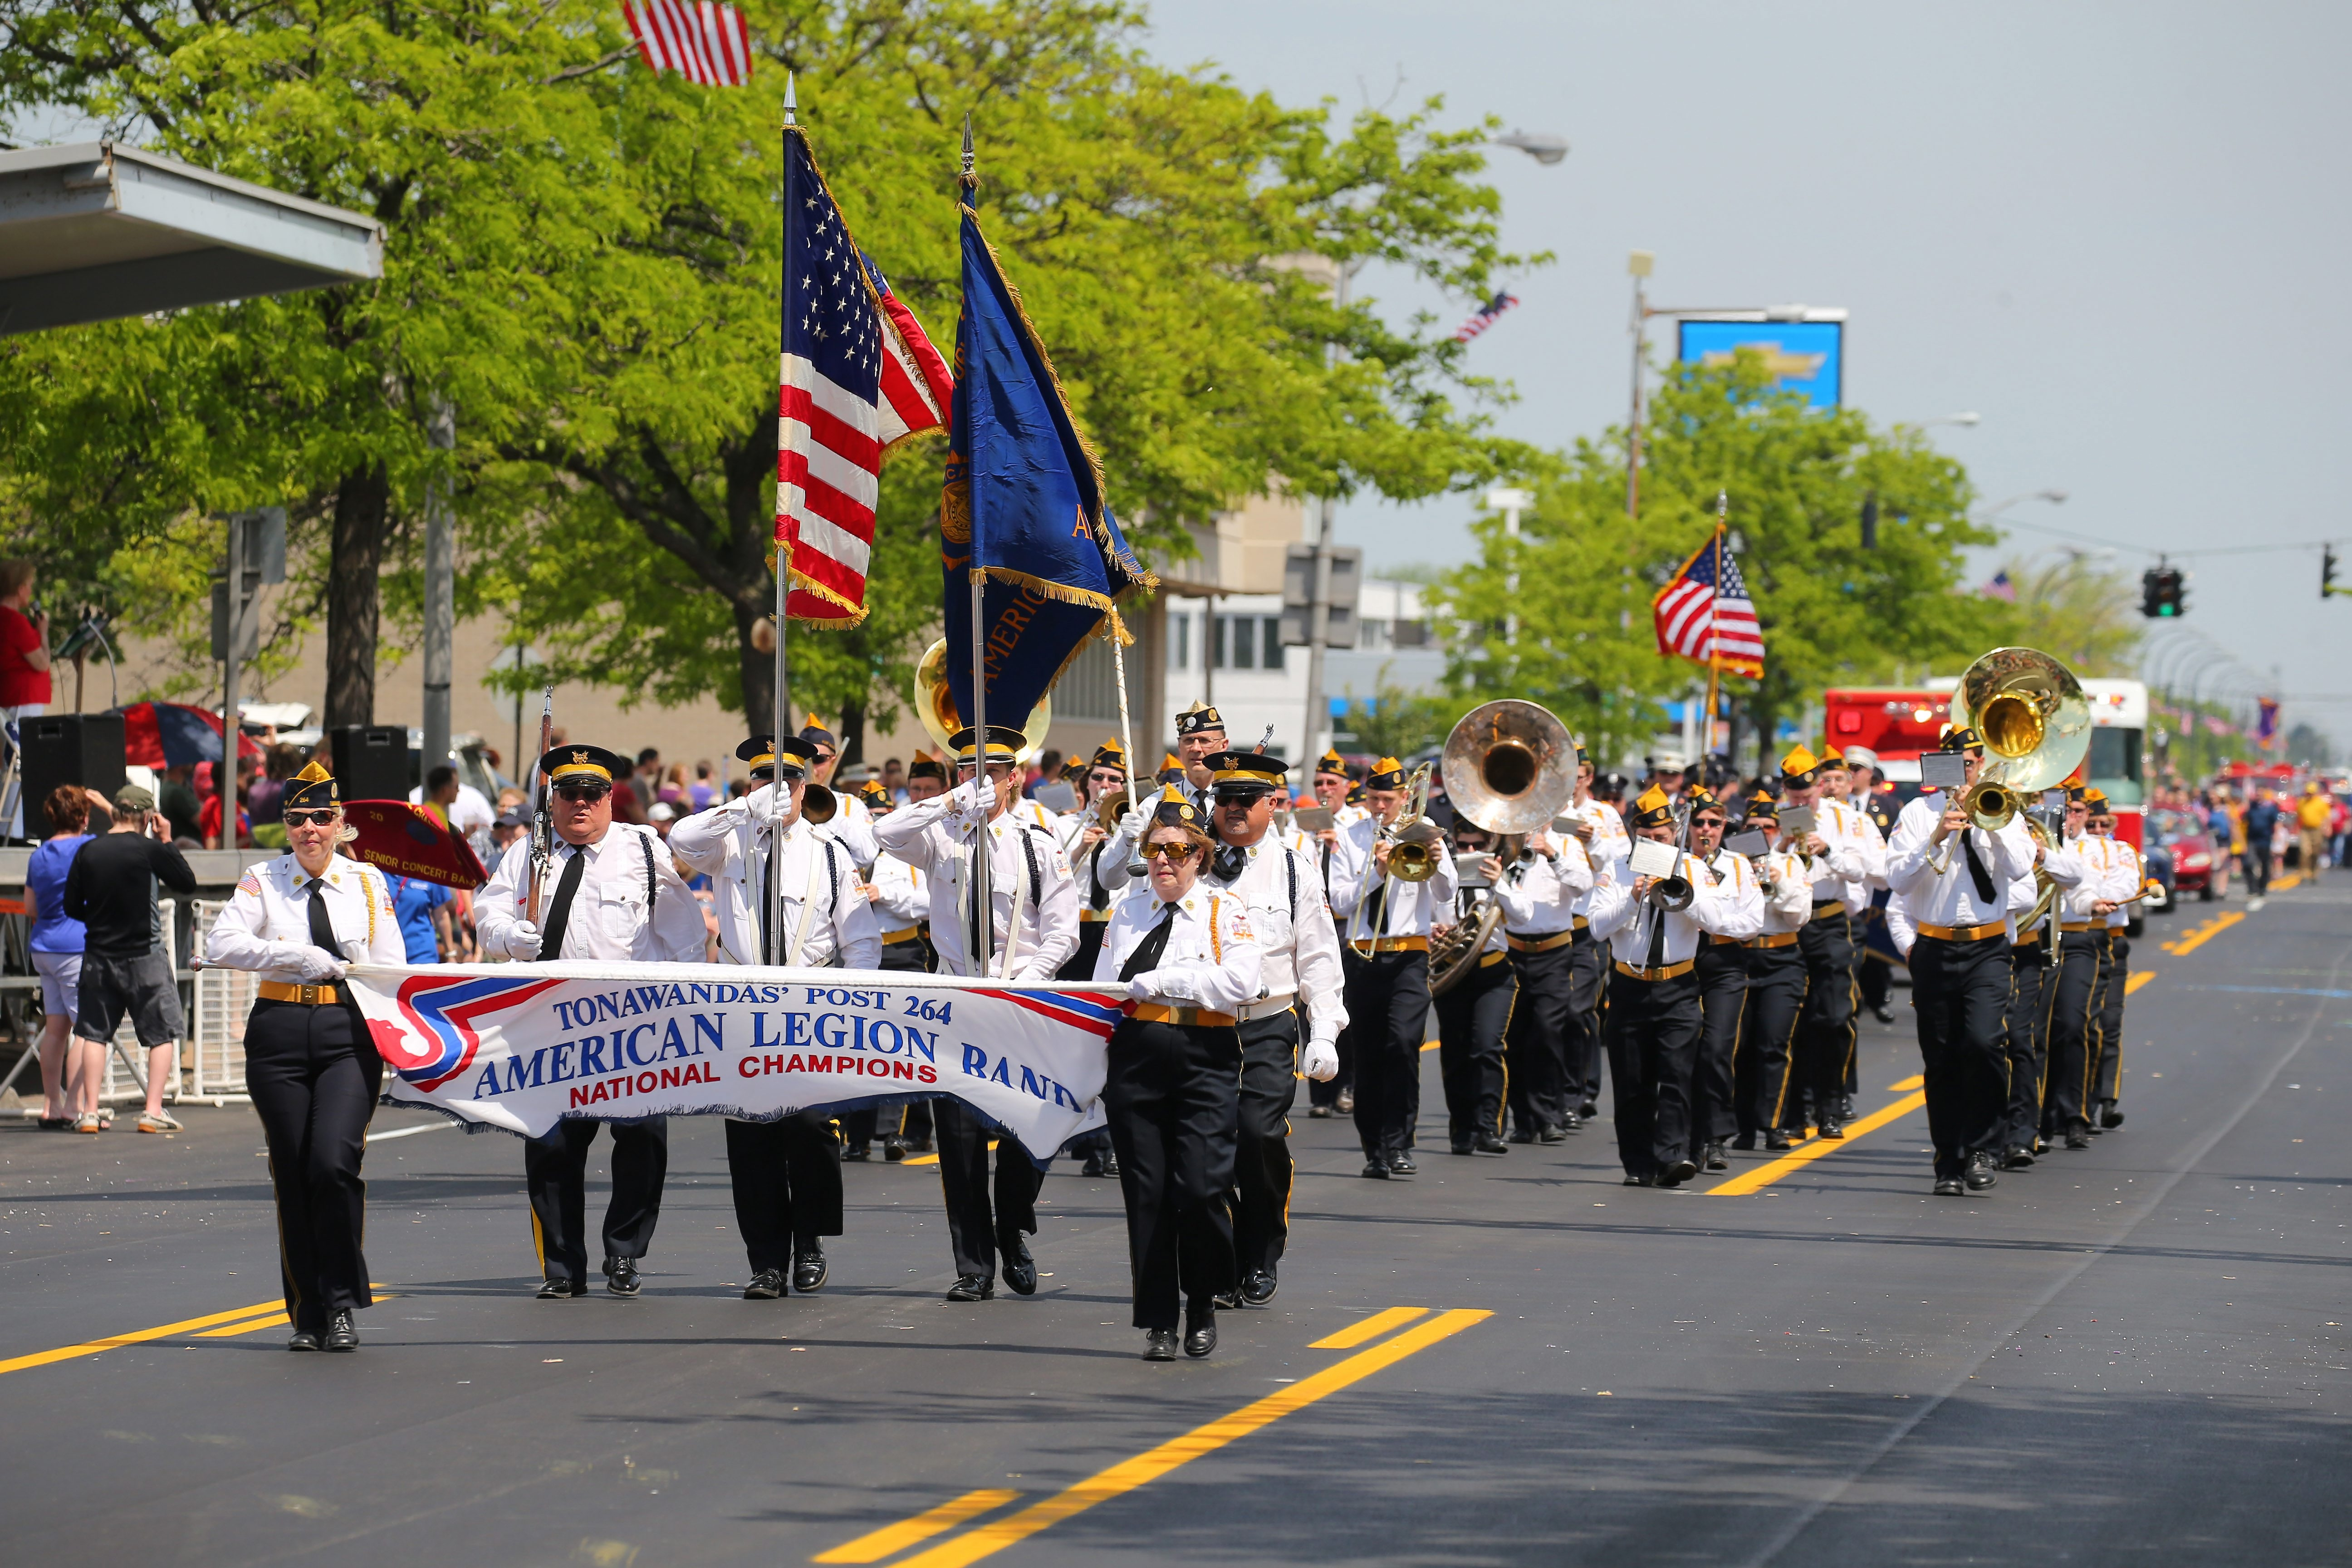 The American Legion Band of the Tonawandas Post 264 march during the Memorial Day parade in Kenmore at last year's parade. (Mark Mulville/News file photo)